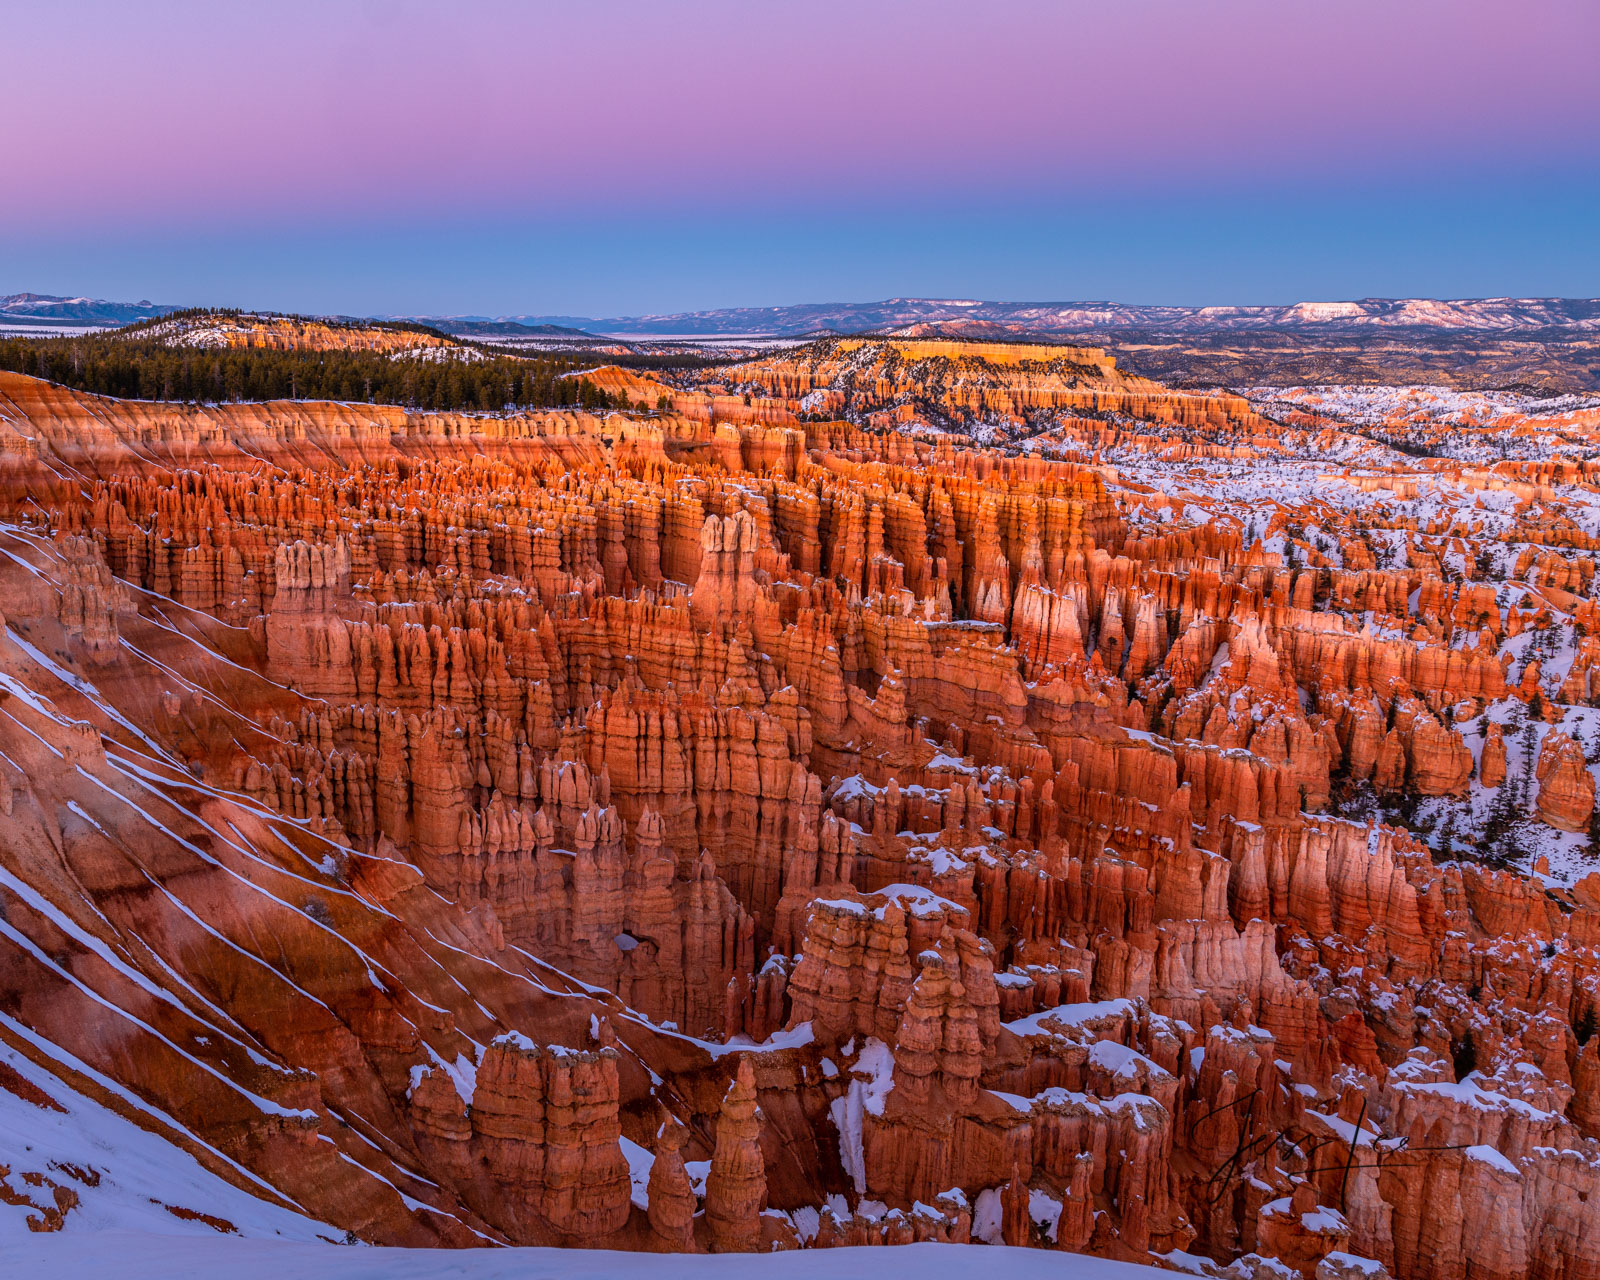 Limited Edition of 50 Exclusive high-resolution Museum Quality Fine Art Prints of Winter Morning Glow over the Red Rocks Country...